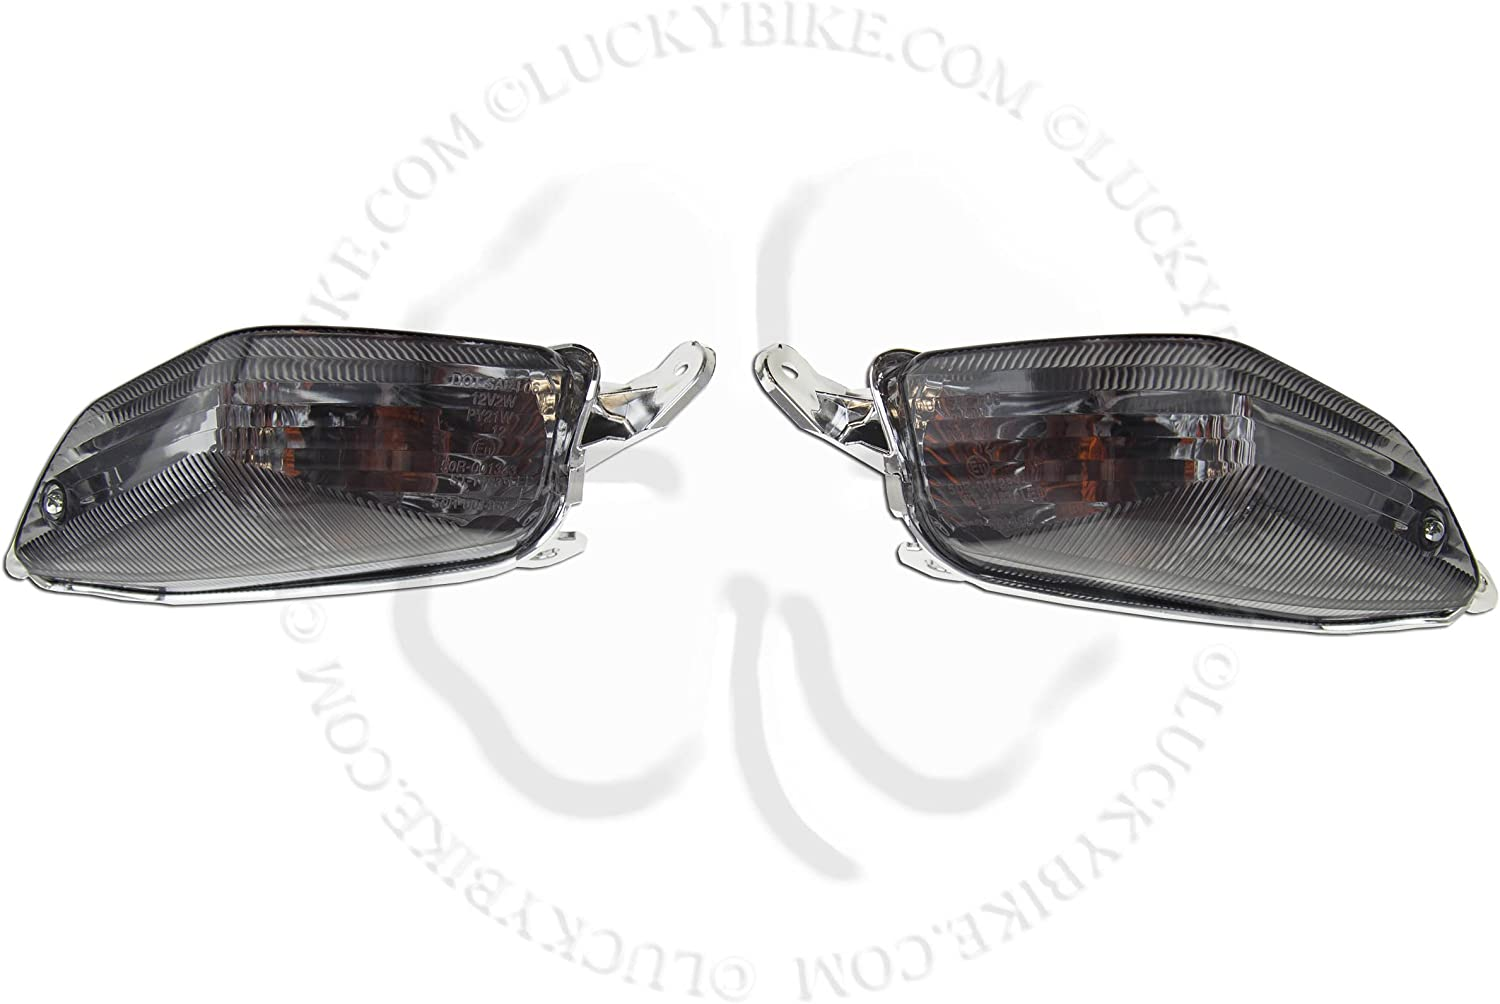 Rear Turn Signal NoCut For Kawasaki Ninja ZX 10R ZG 14 Euro Light Blinker Smoke